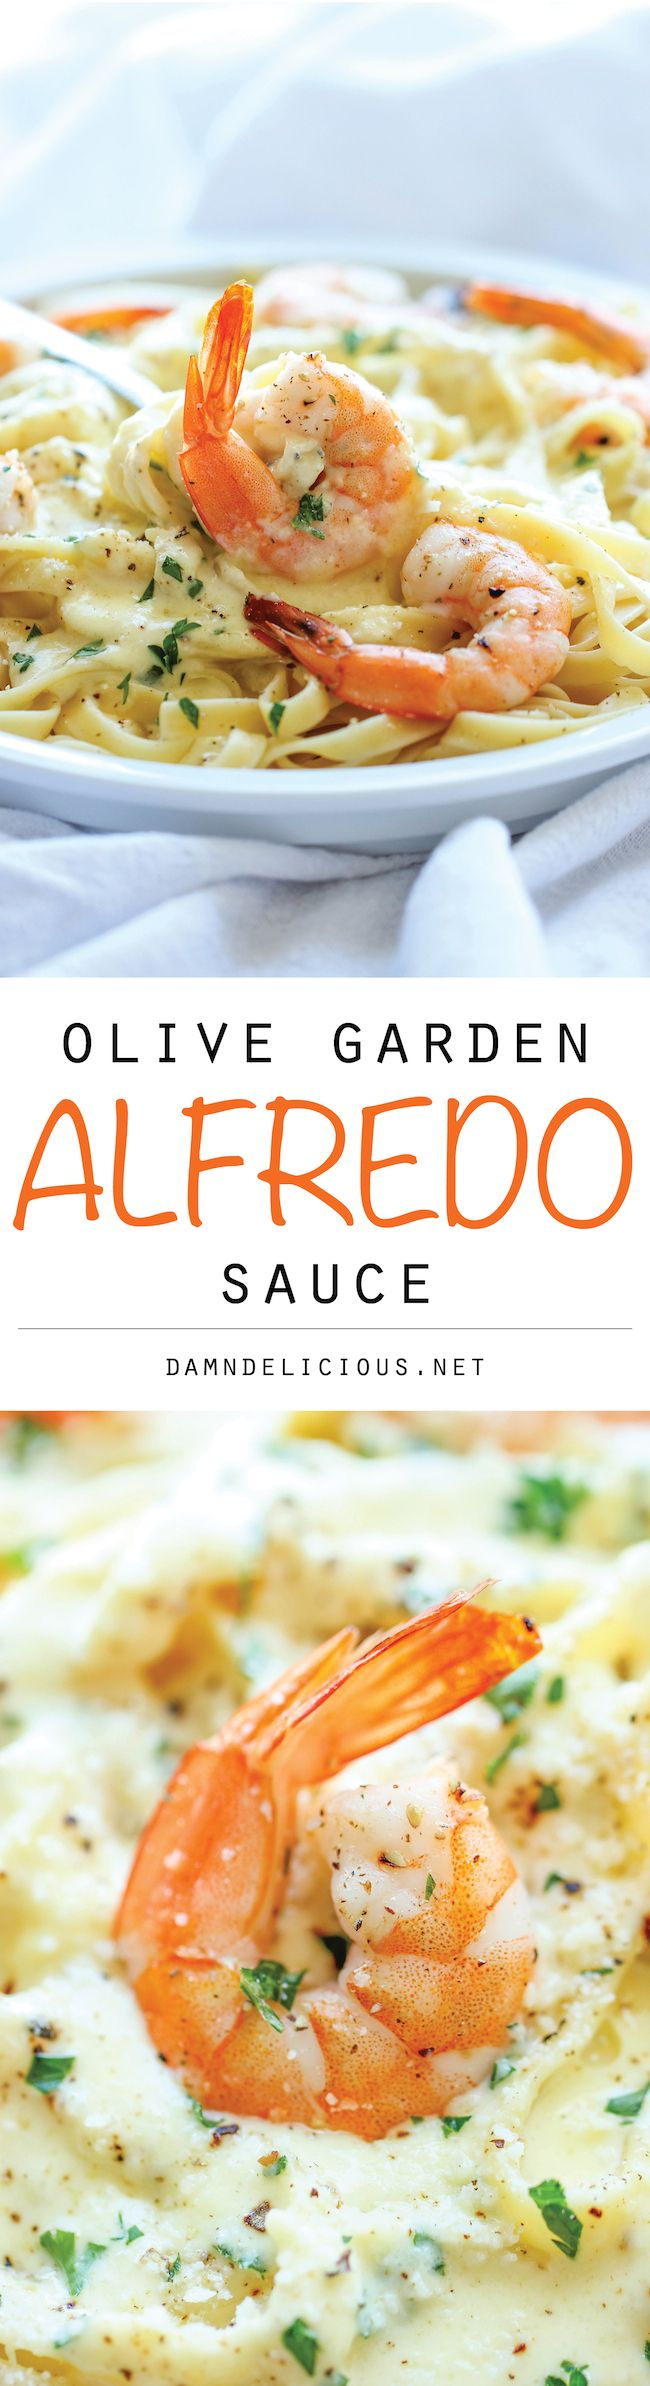 Olive Garden Alfredo Sauce – An easy, no-fuss dish you can make right at home. It's also cheaper, healthier and quicker than ordering out!